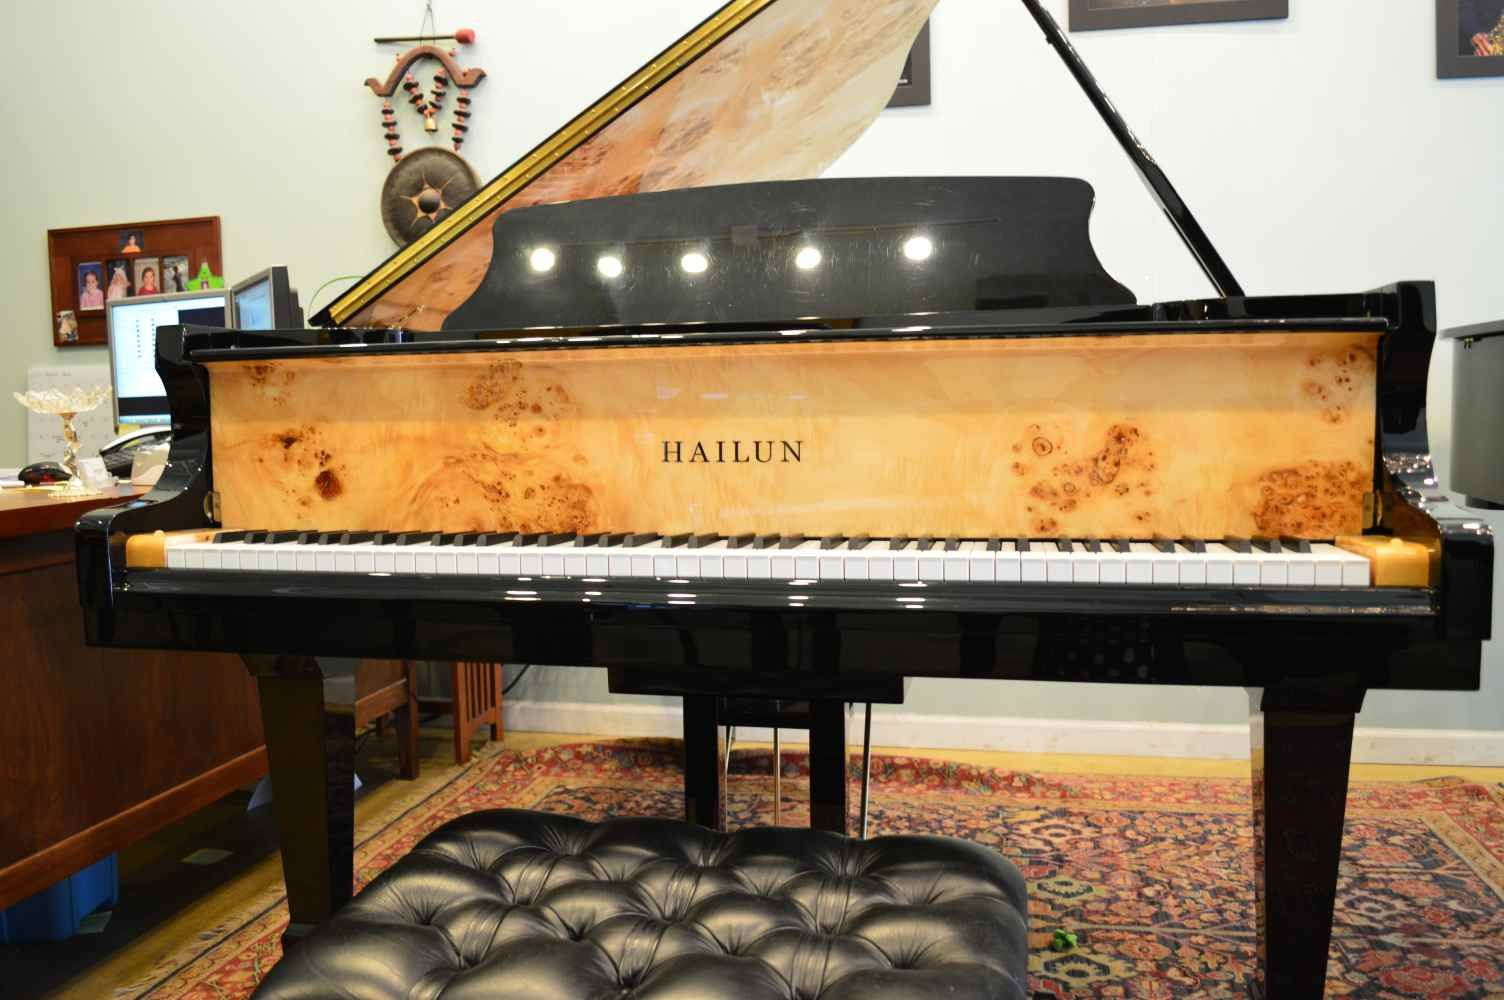 GORGEOUS burled maple on the fall-board and inner rim of this Hailun model 178